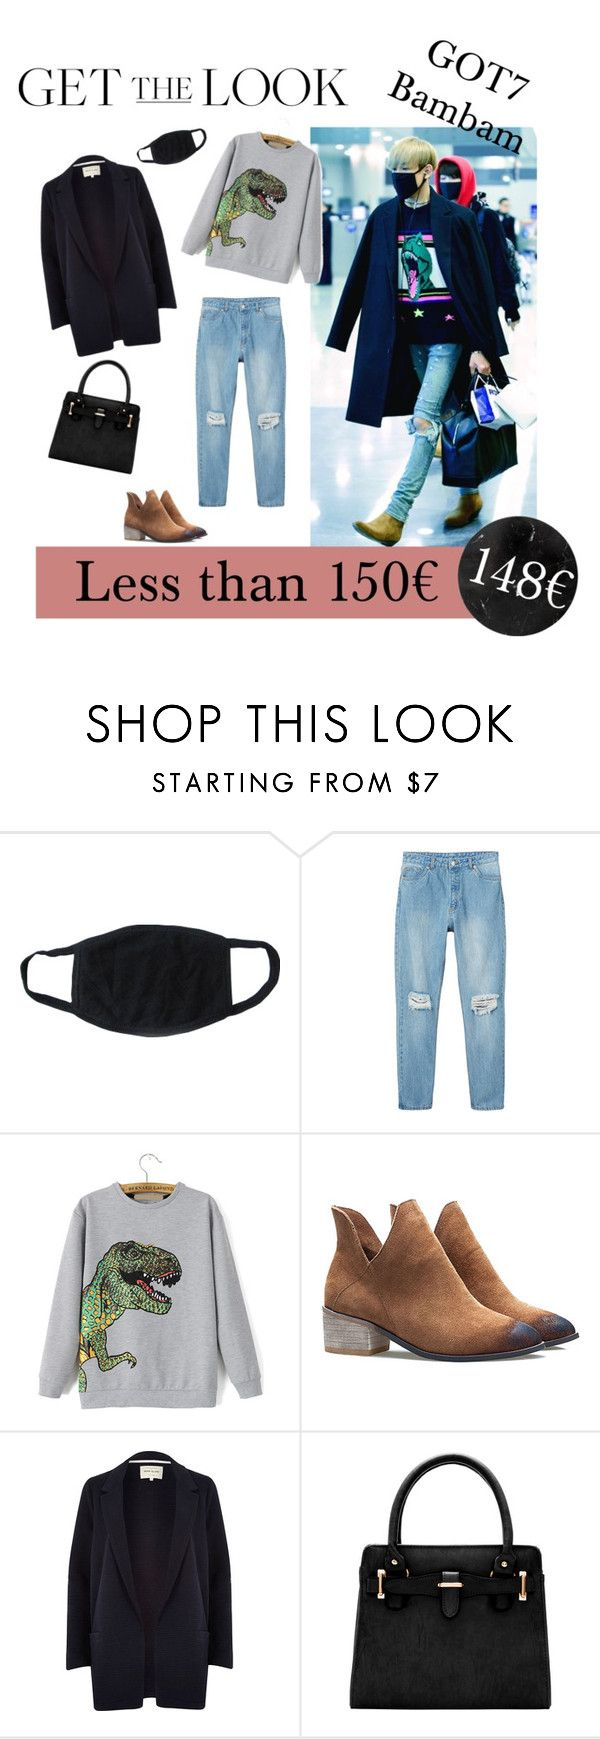 """""""Get The Look : Bambam from GOT7"""" by somewhere-in-neverland24 ❤ liked on Polyvore featuring Monki, River Island, women's clothing, women's fashion, women, female, woman, misses and juniors"""